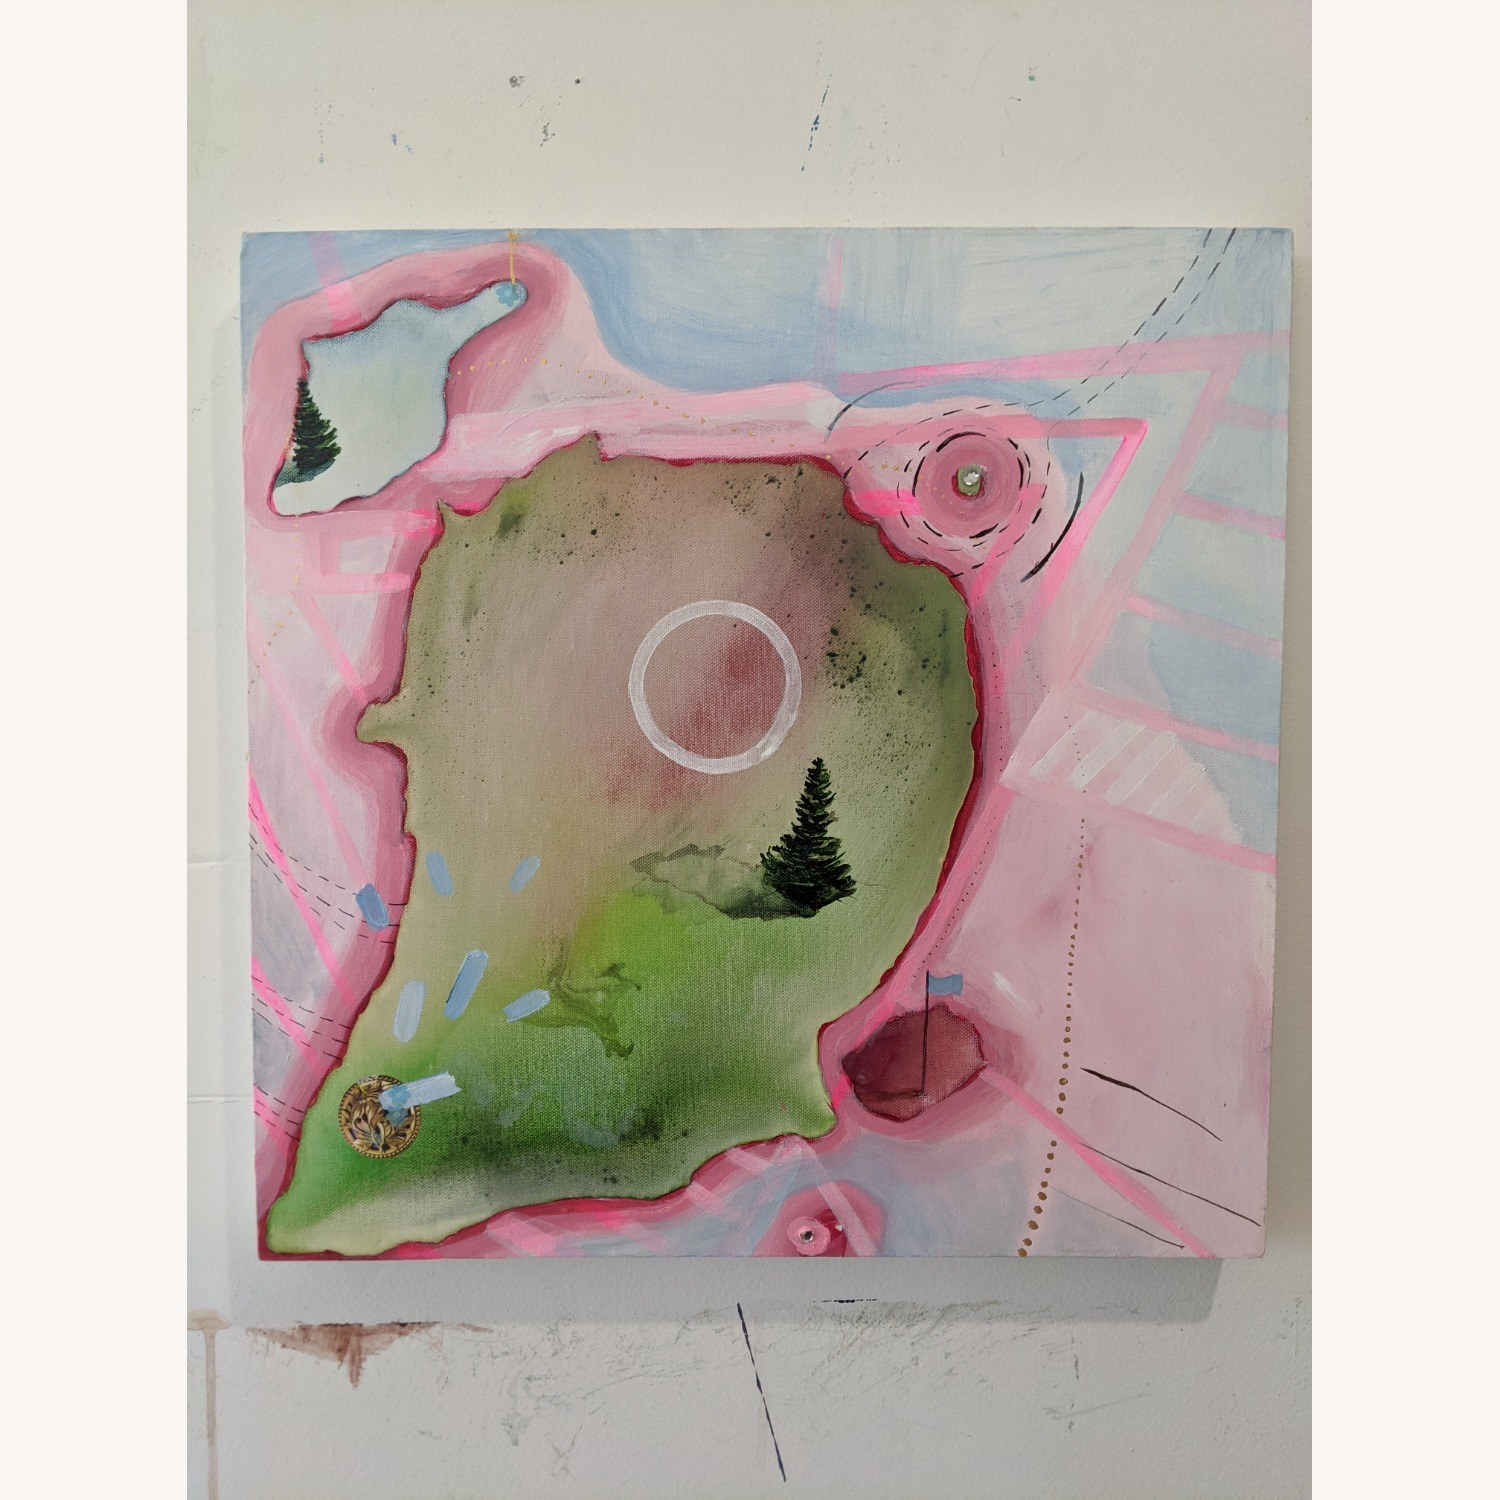 Bright Pink Painting - image-1